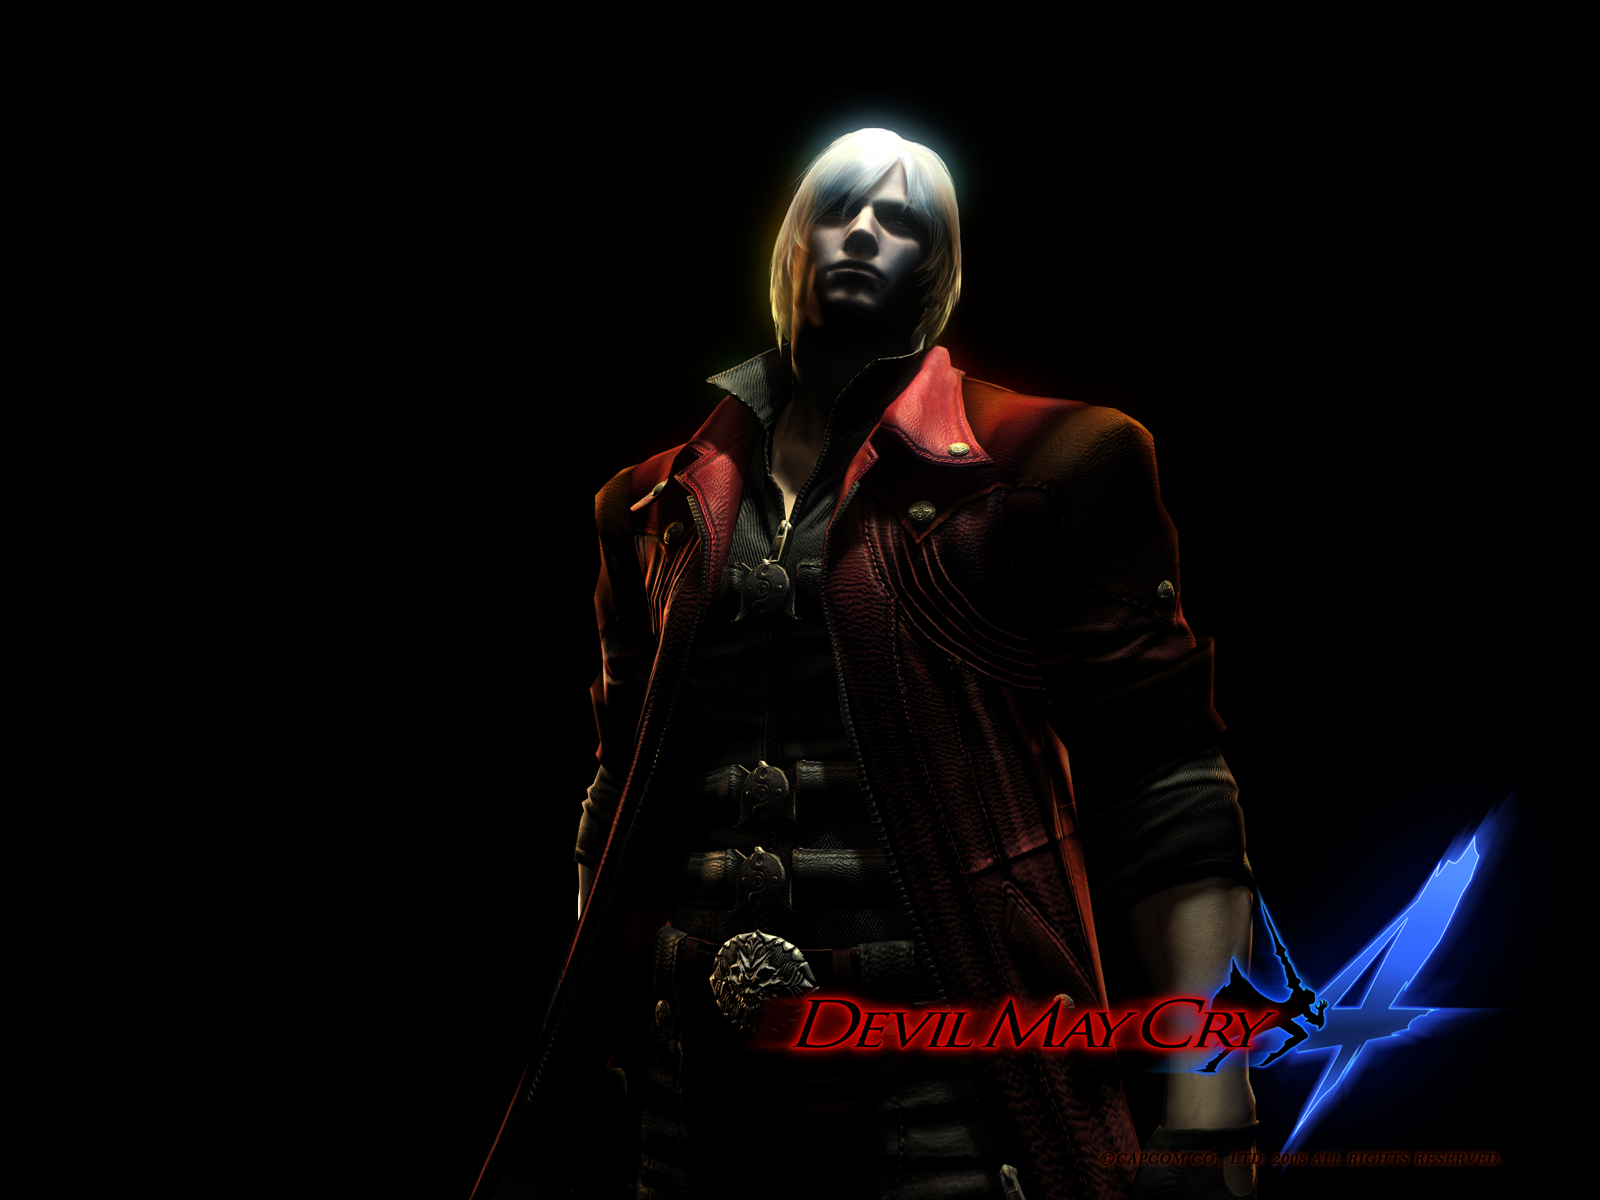 Devil May Cry Fanarts Dmc4wp12full